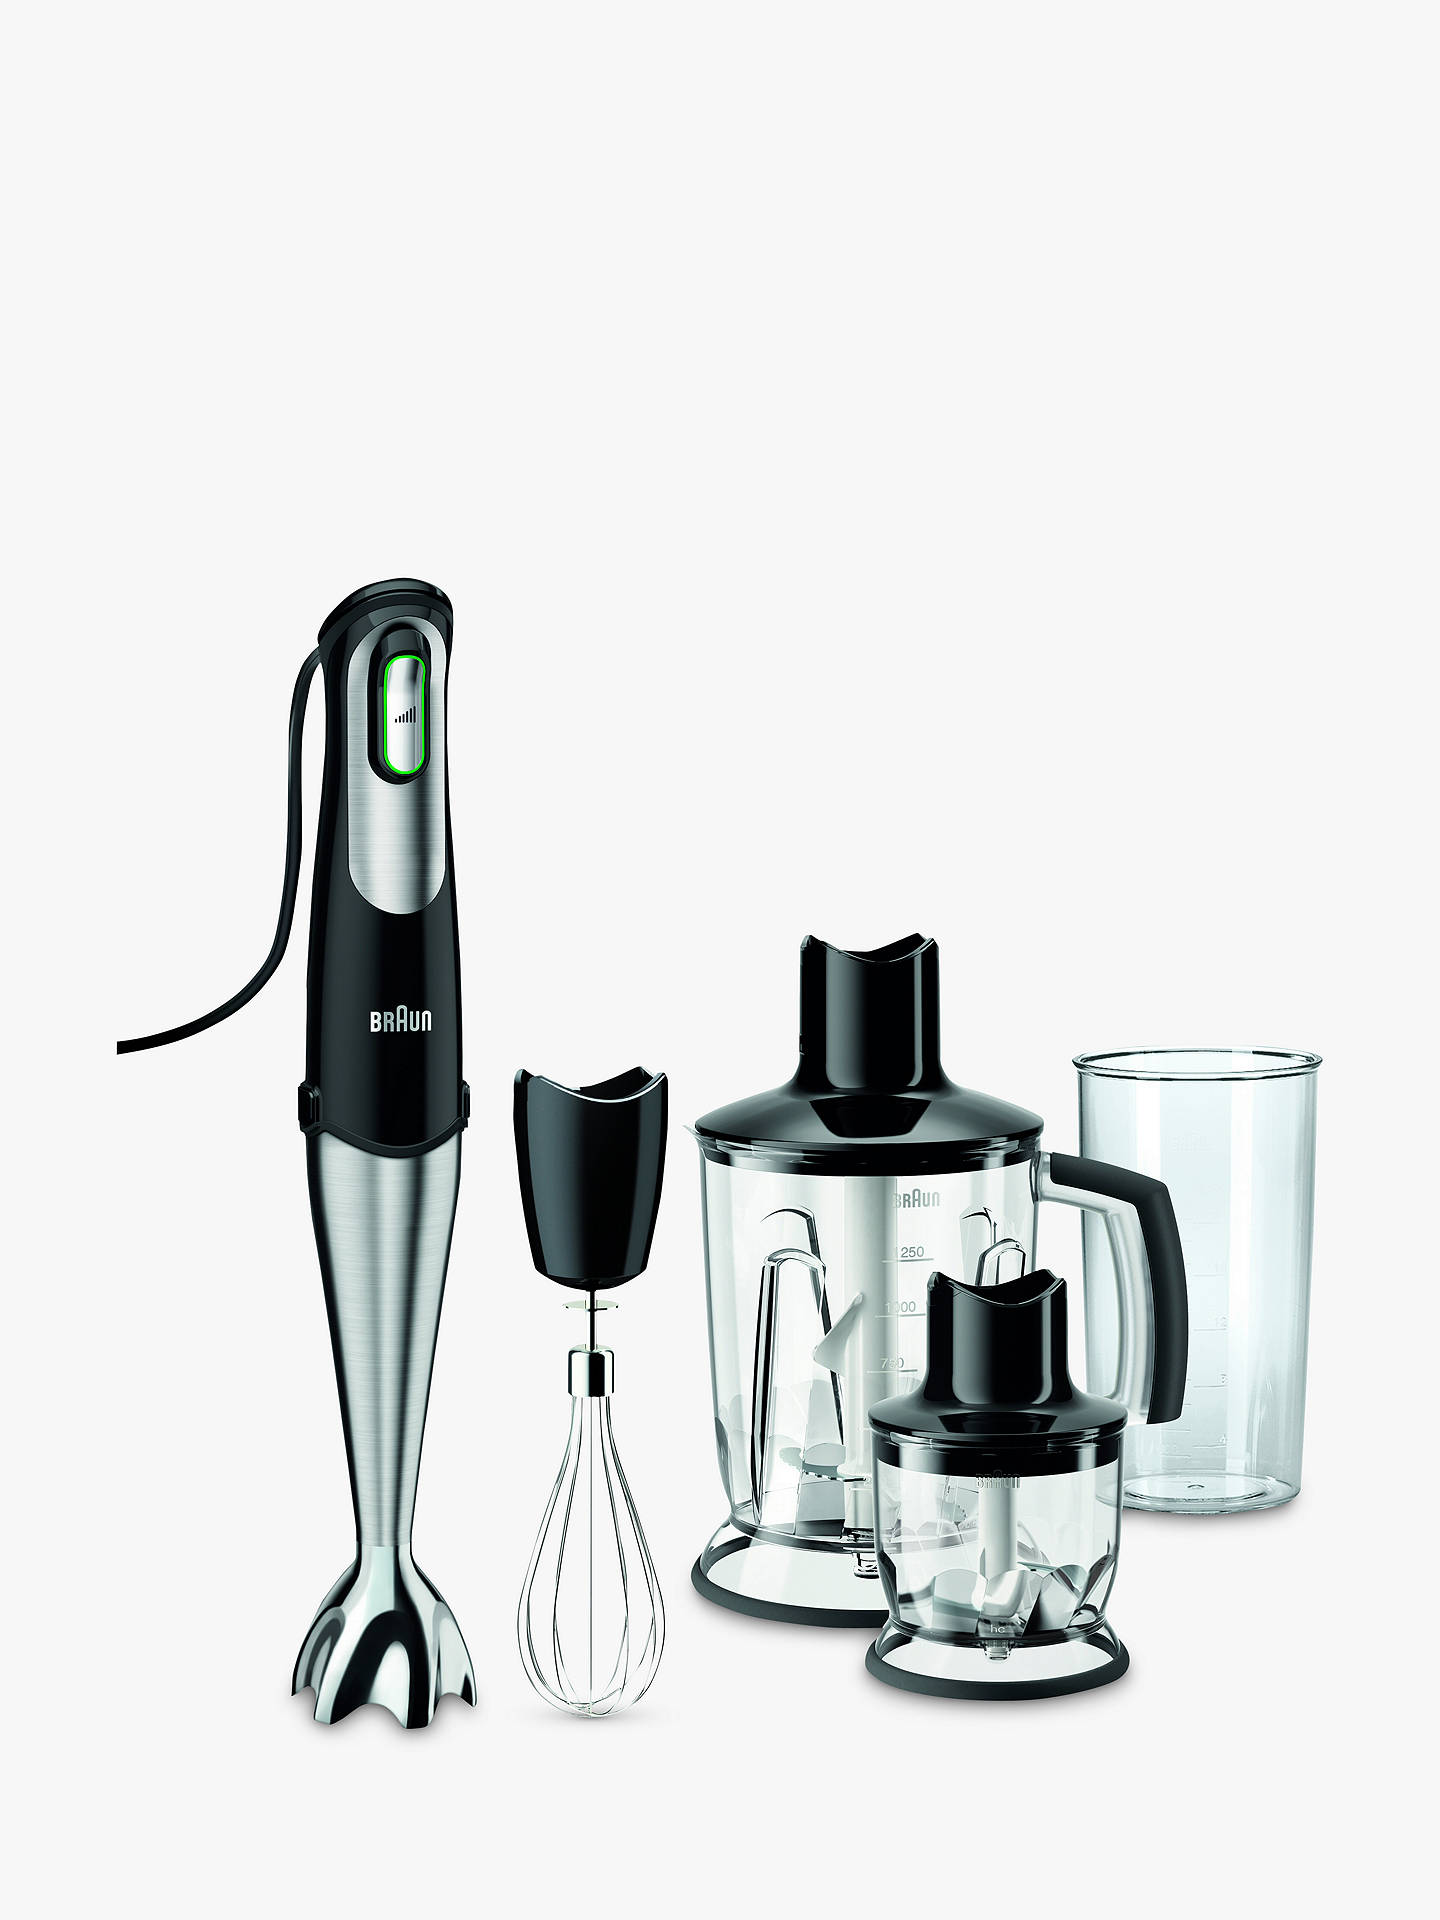 Braun, MQ745, Hand Blender in Black